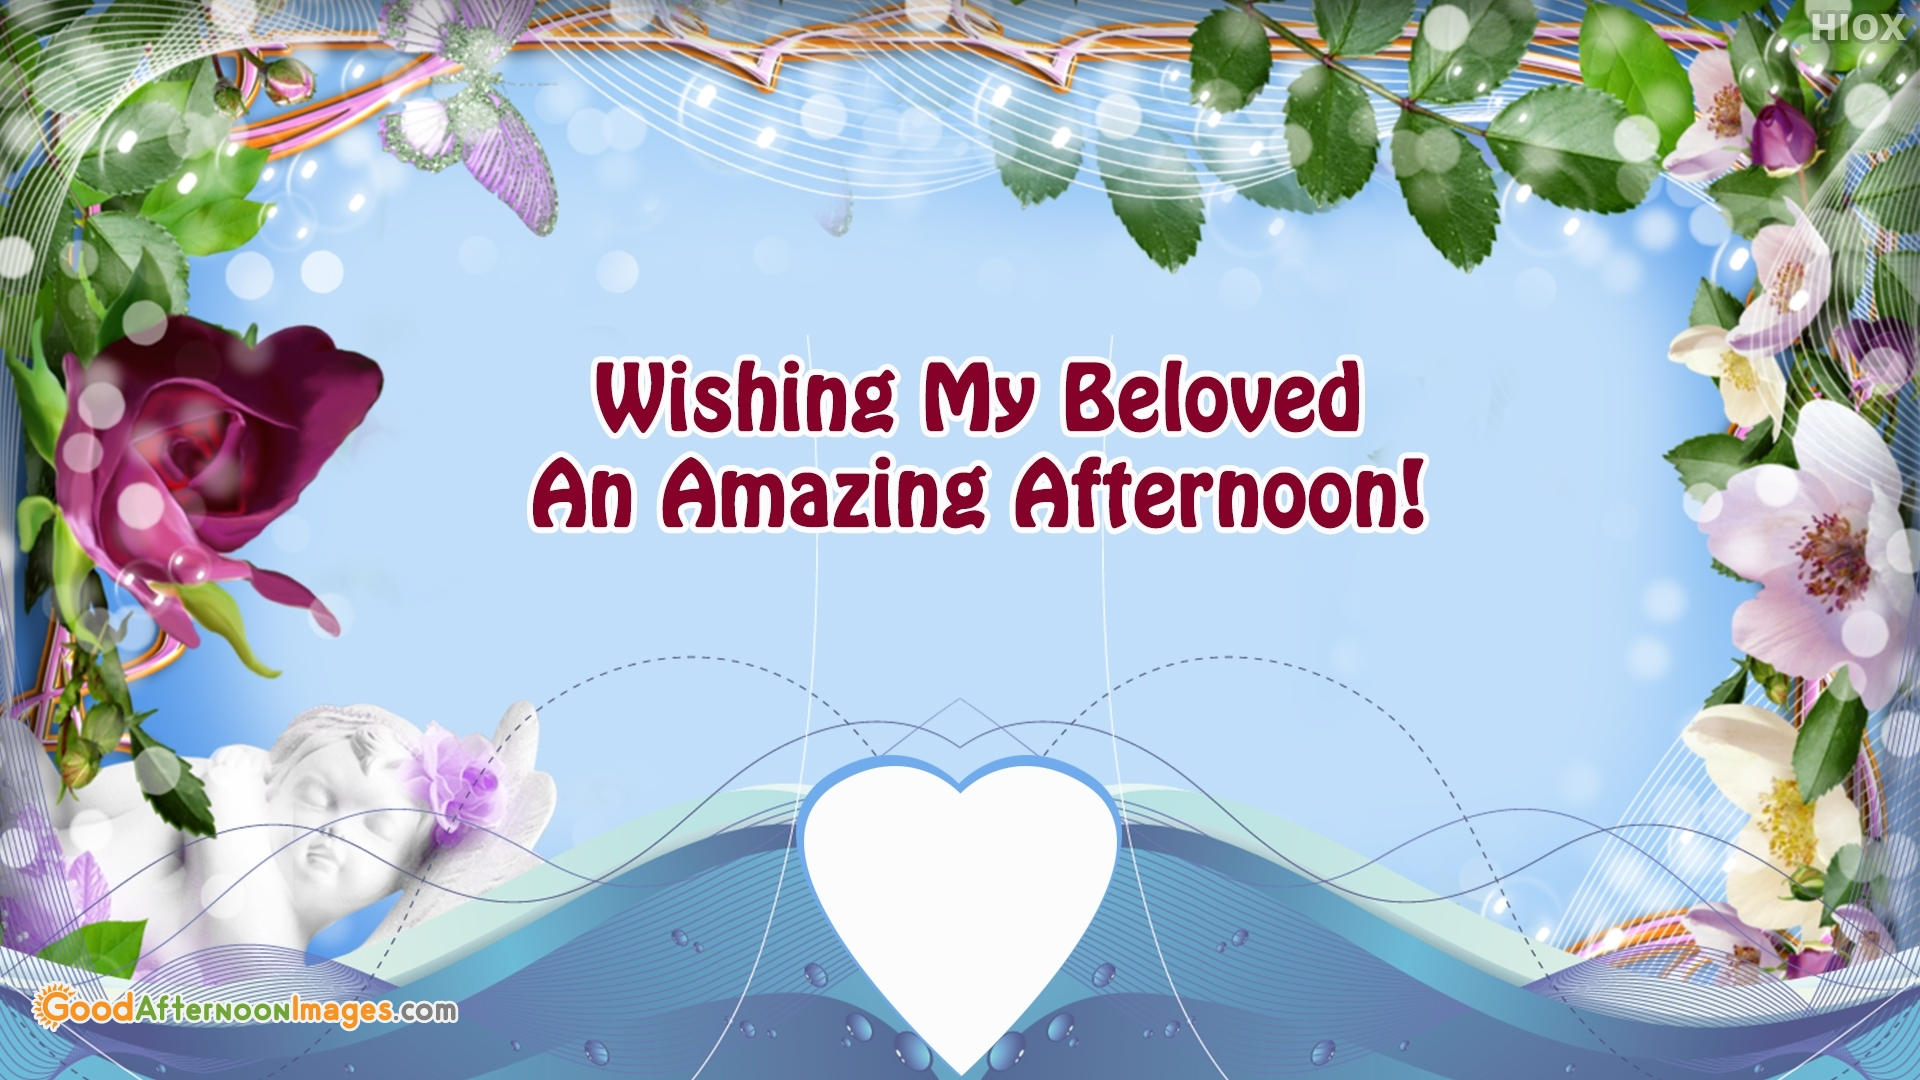 Wishing My Beloved An Amazing Afternoon!